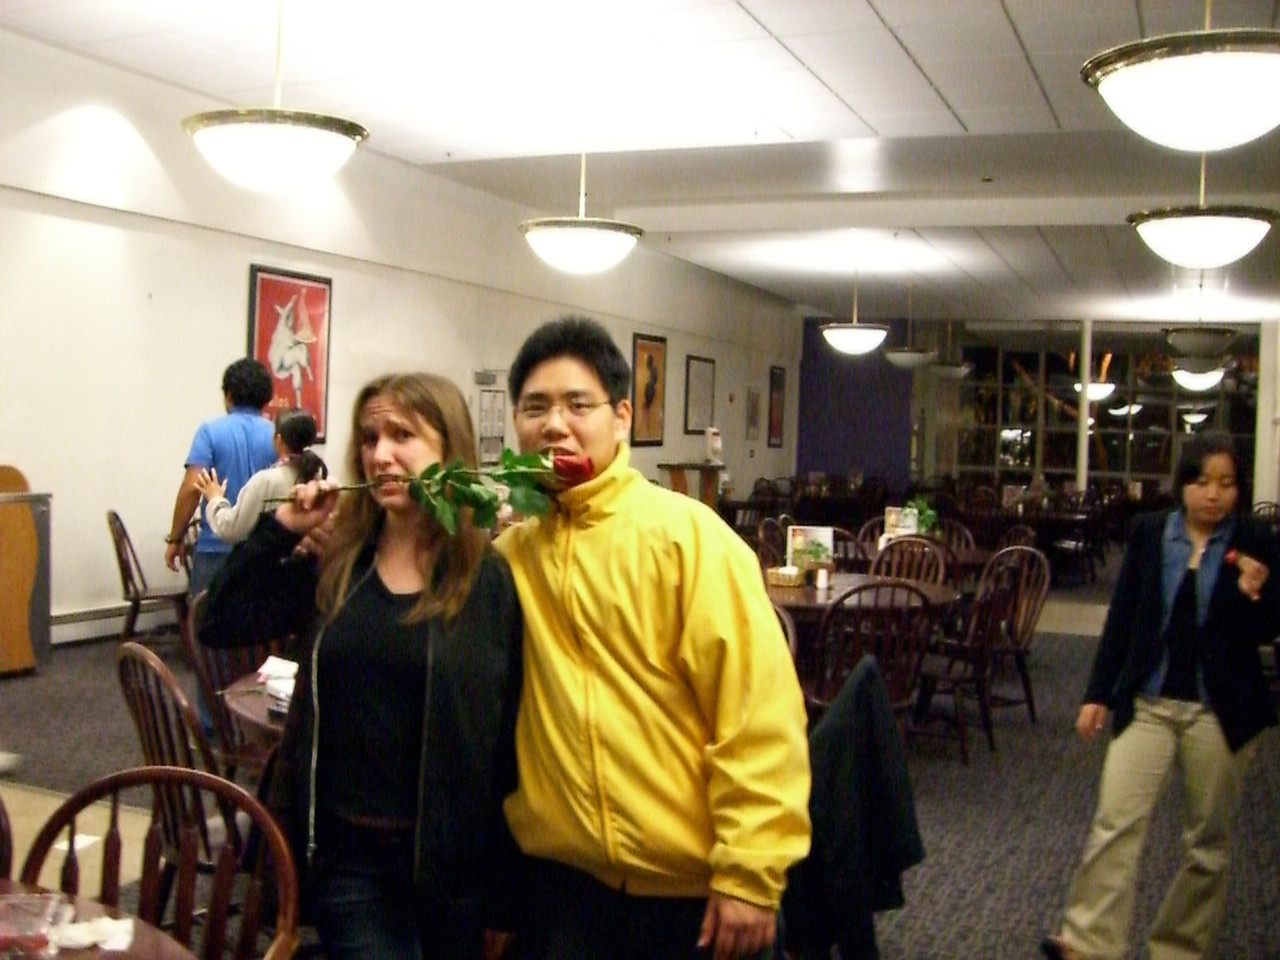 2006 02 14 Tue - Jenna Sloat & David Chiang 1